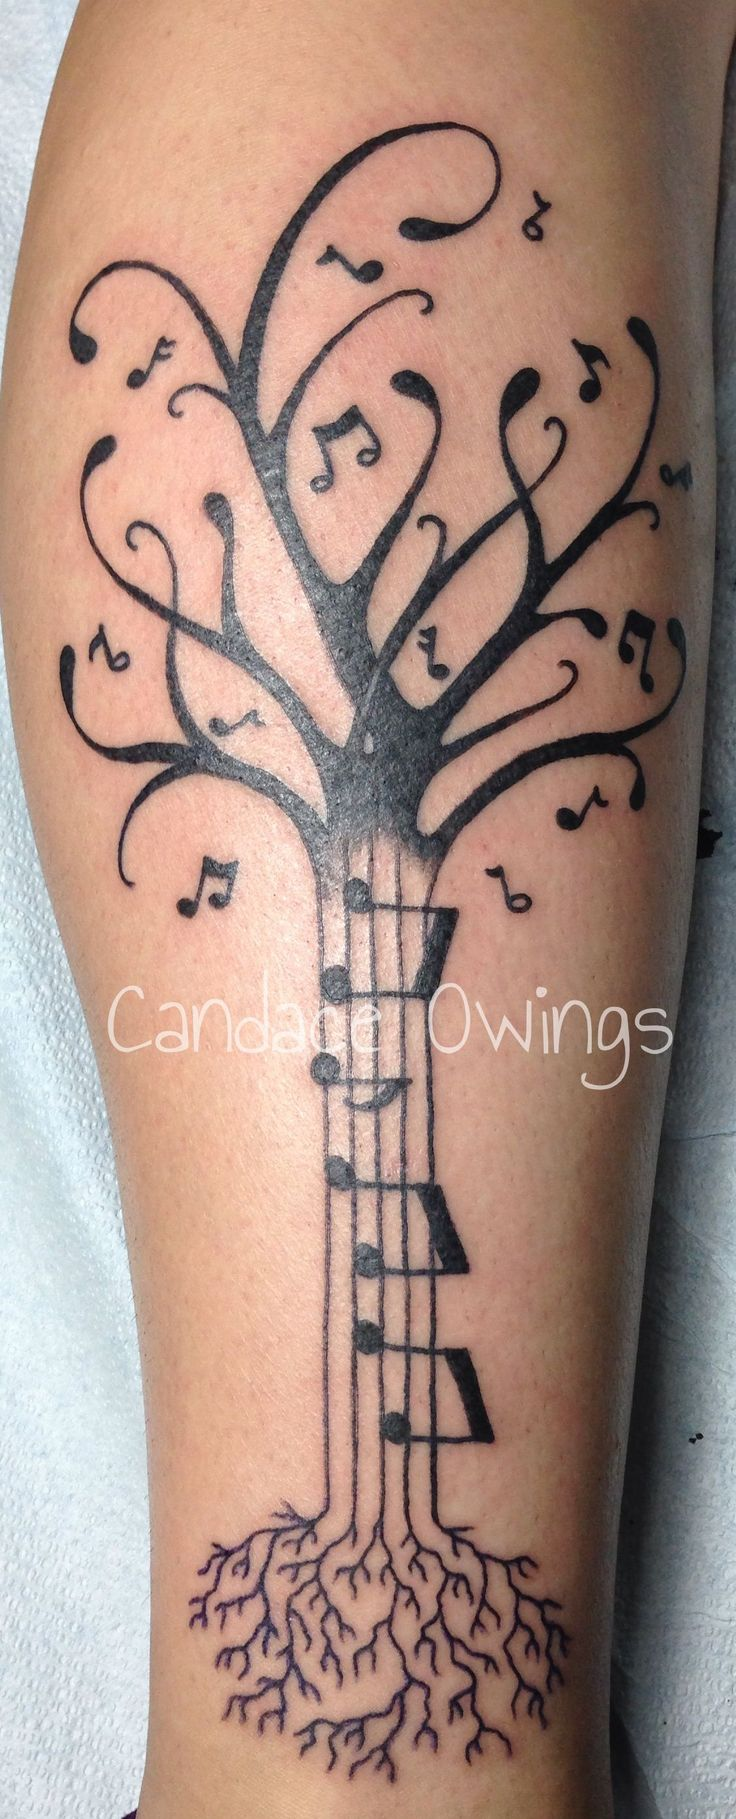 69 meaningful family tattoos designs mens craze - Really Fun Tattoo I Did Of A Music Tree With Music Notes For Leaves And The Trunk On The Side Of A Calf Still One Of My Favorite Pieces So Far